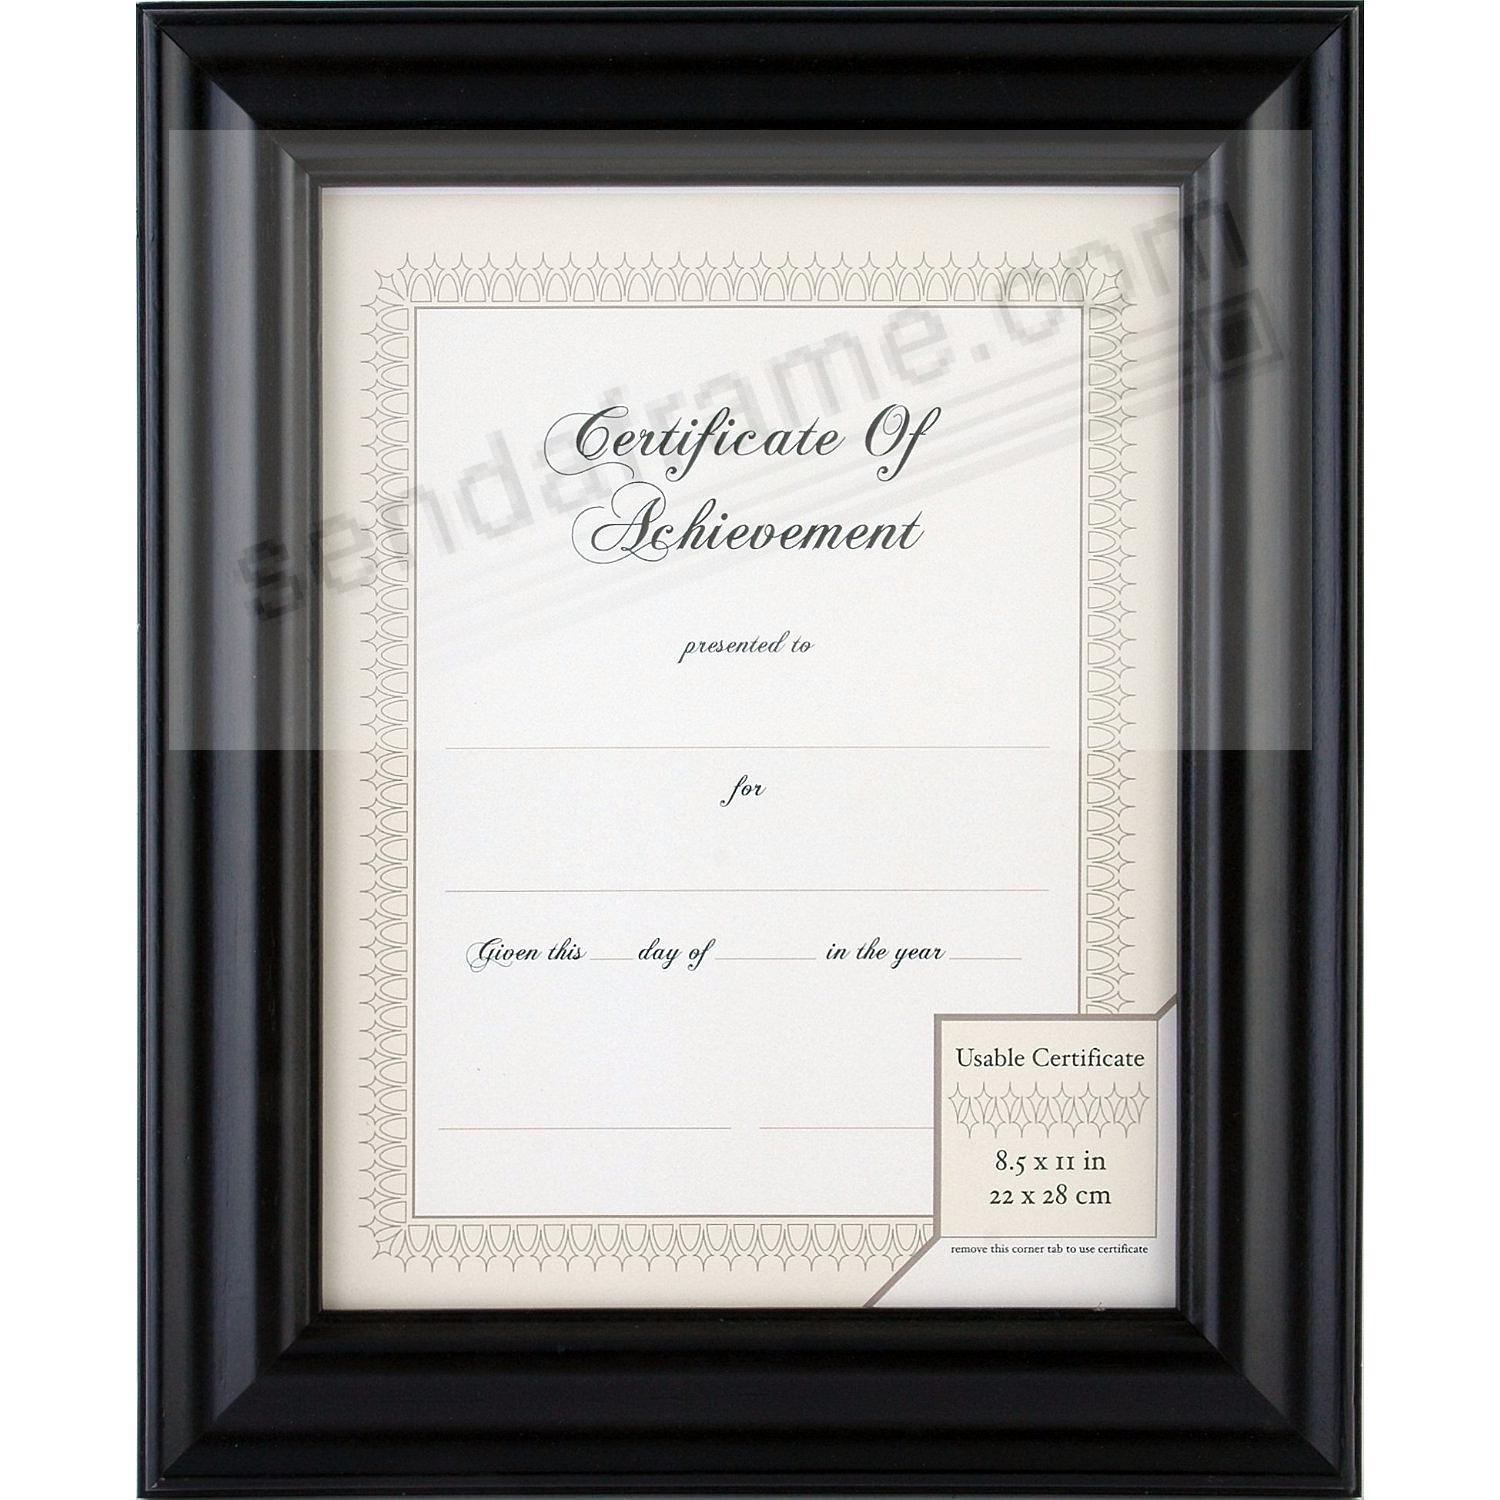 satin black 11x8frac12 certificate frame by gallery solutionsreg